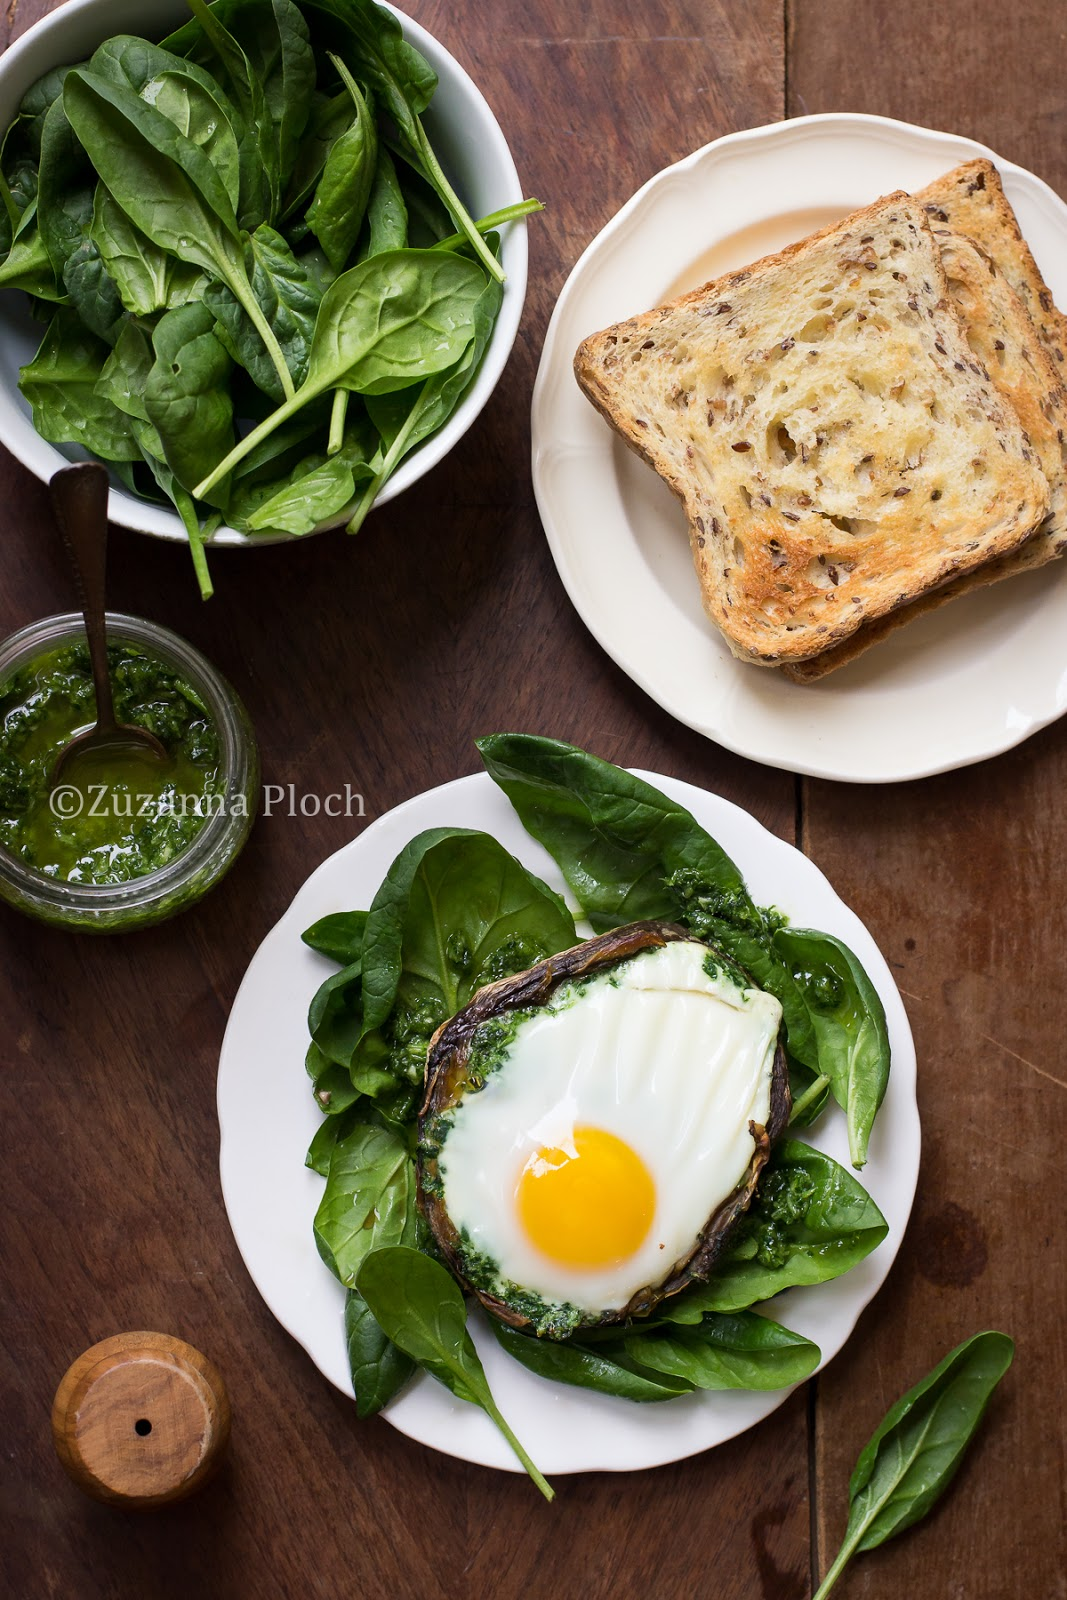 Egg in mushroom - food photgraphy by Zuzanna Ploch, fotografia kulinarna